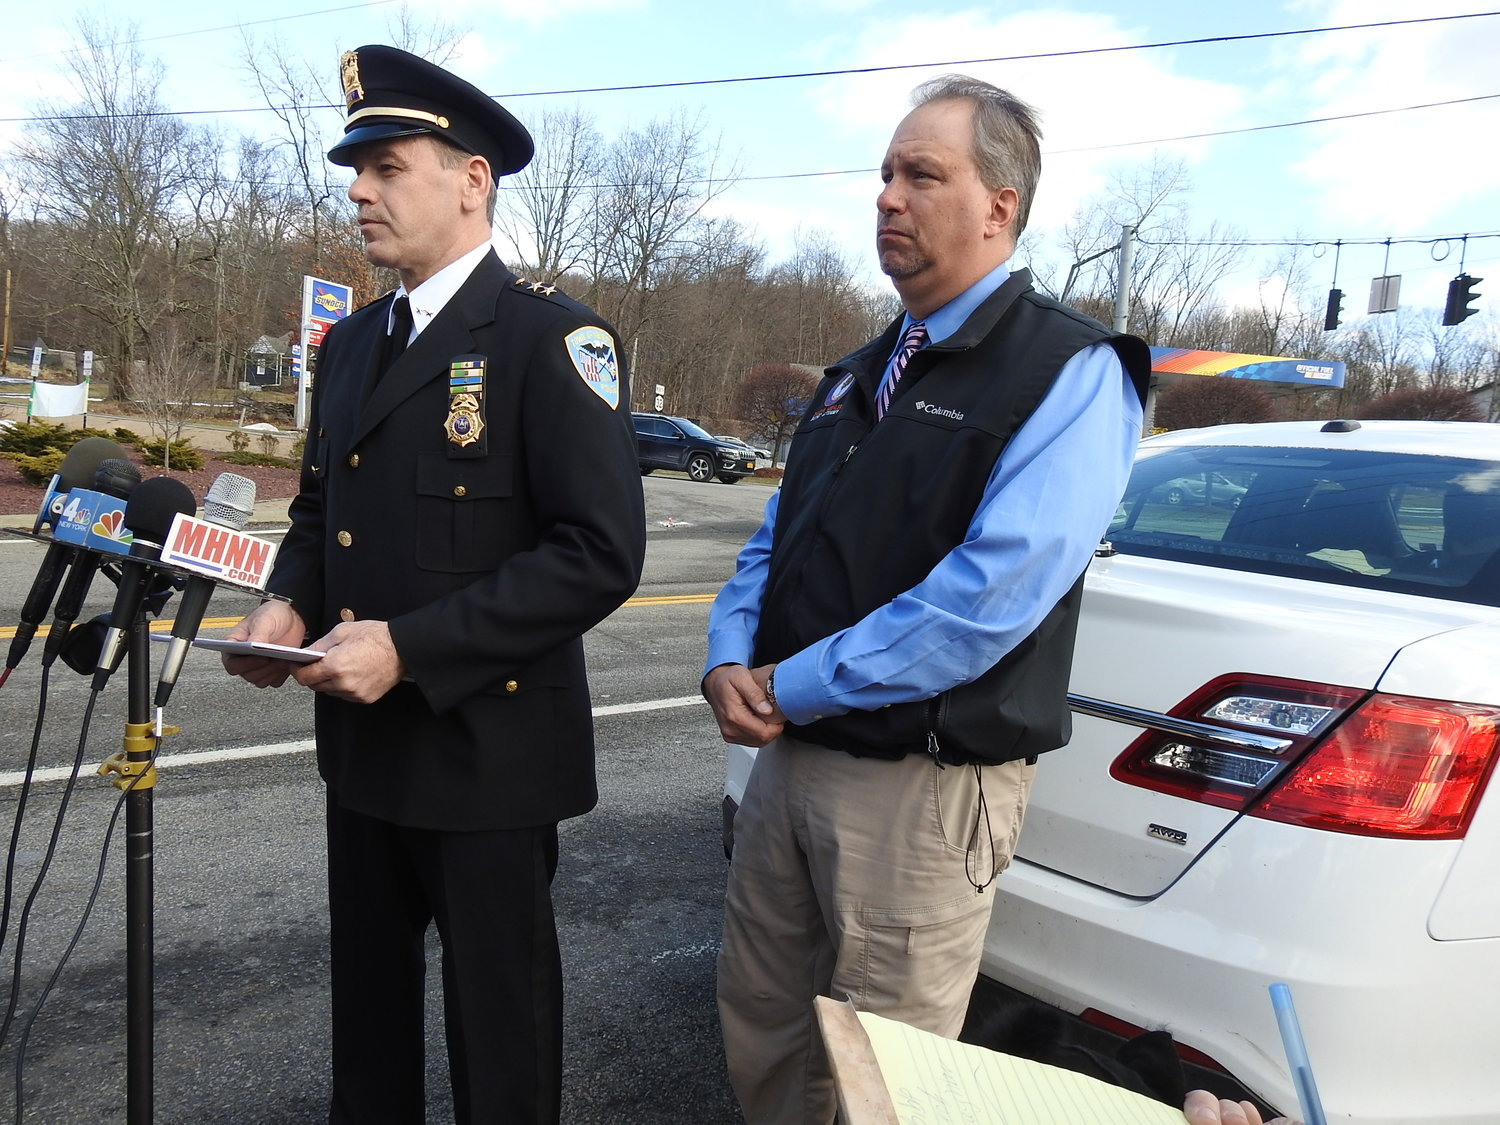 Town of Newburgh Police Chief Donald Campbell addressing the media, Sunday, near the intersection on Route 300 and 32 in the Town of Newburgh